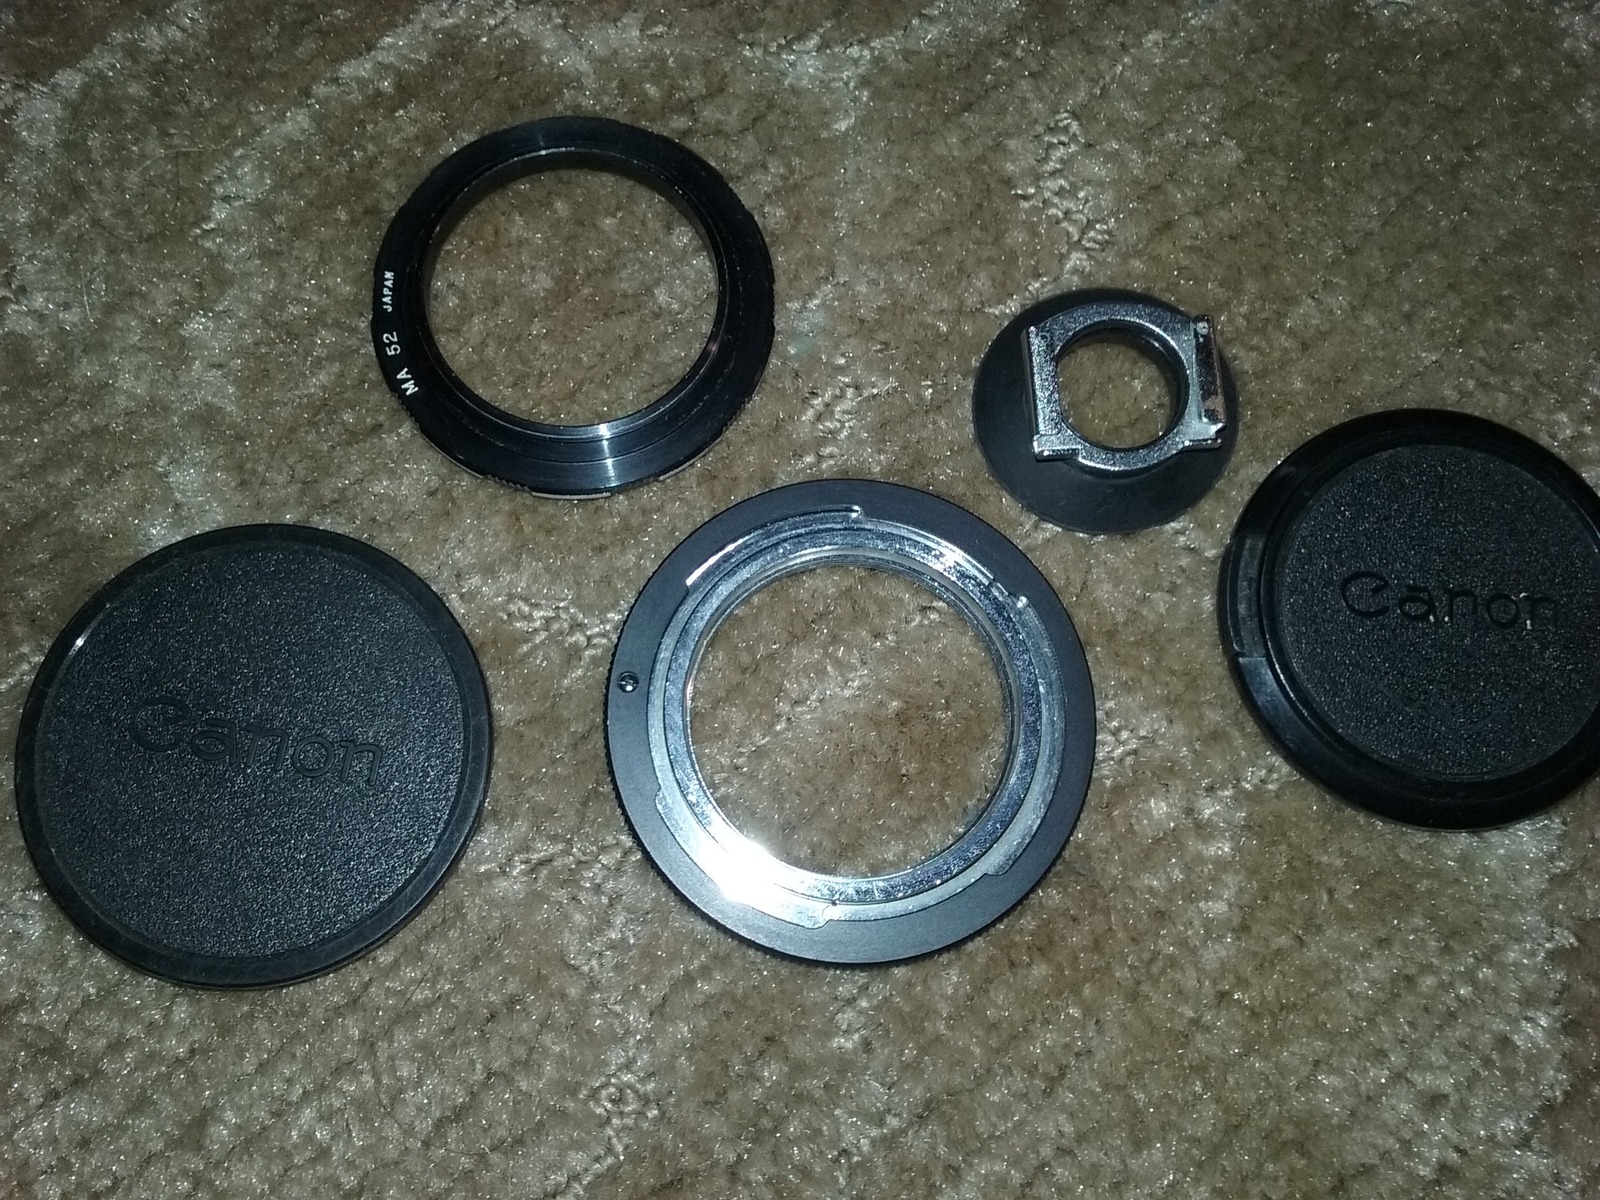 Caonon AE-1 35mm Camera - FD 50mm 1:1.8 Lens - Lens Adapter's and cap's